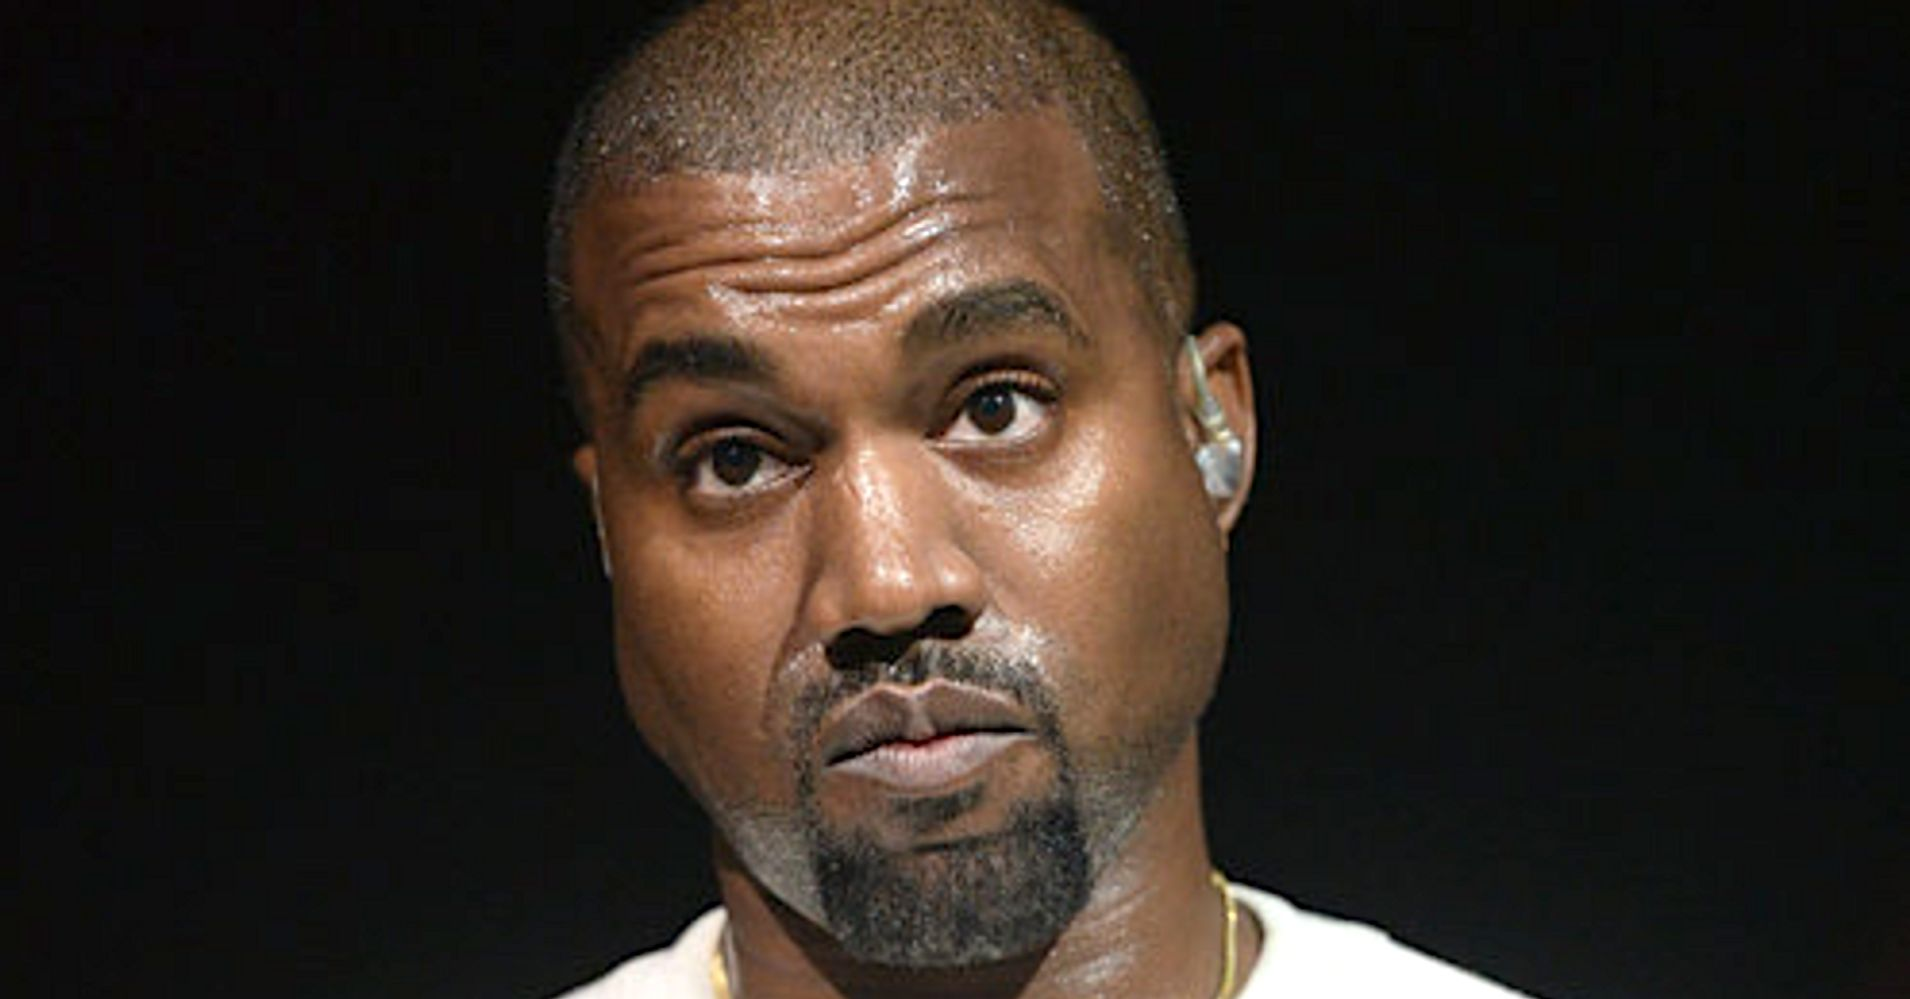 Kanye West Calls For Repeal Of Amendment That Abolished Slavery